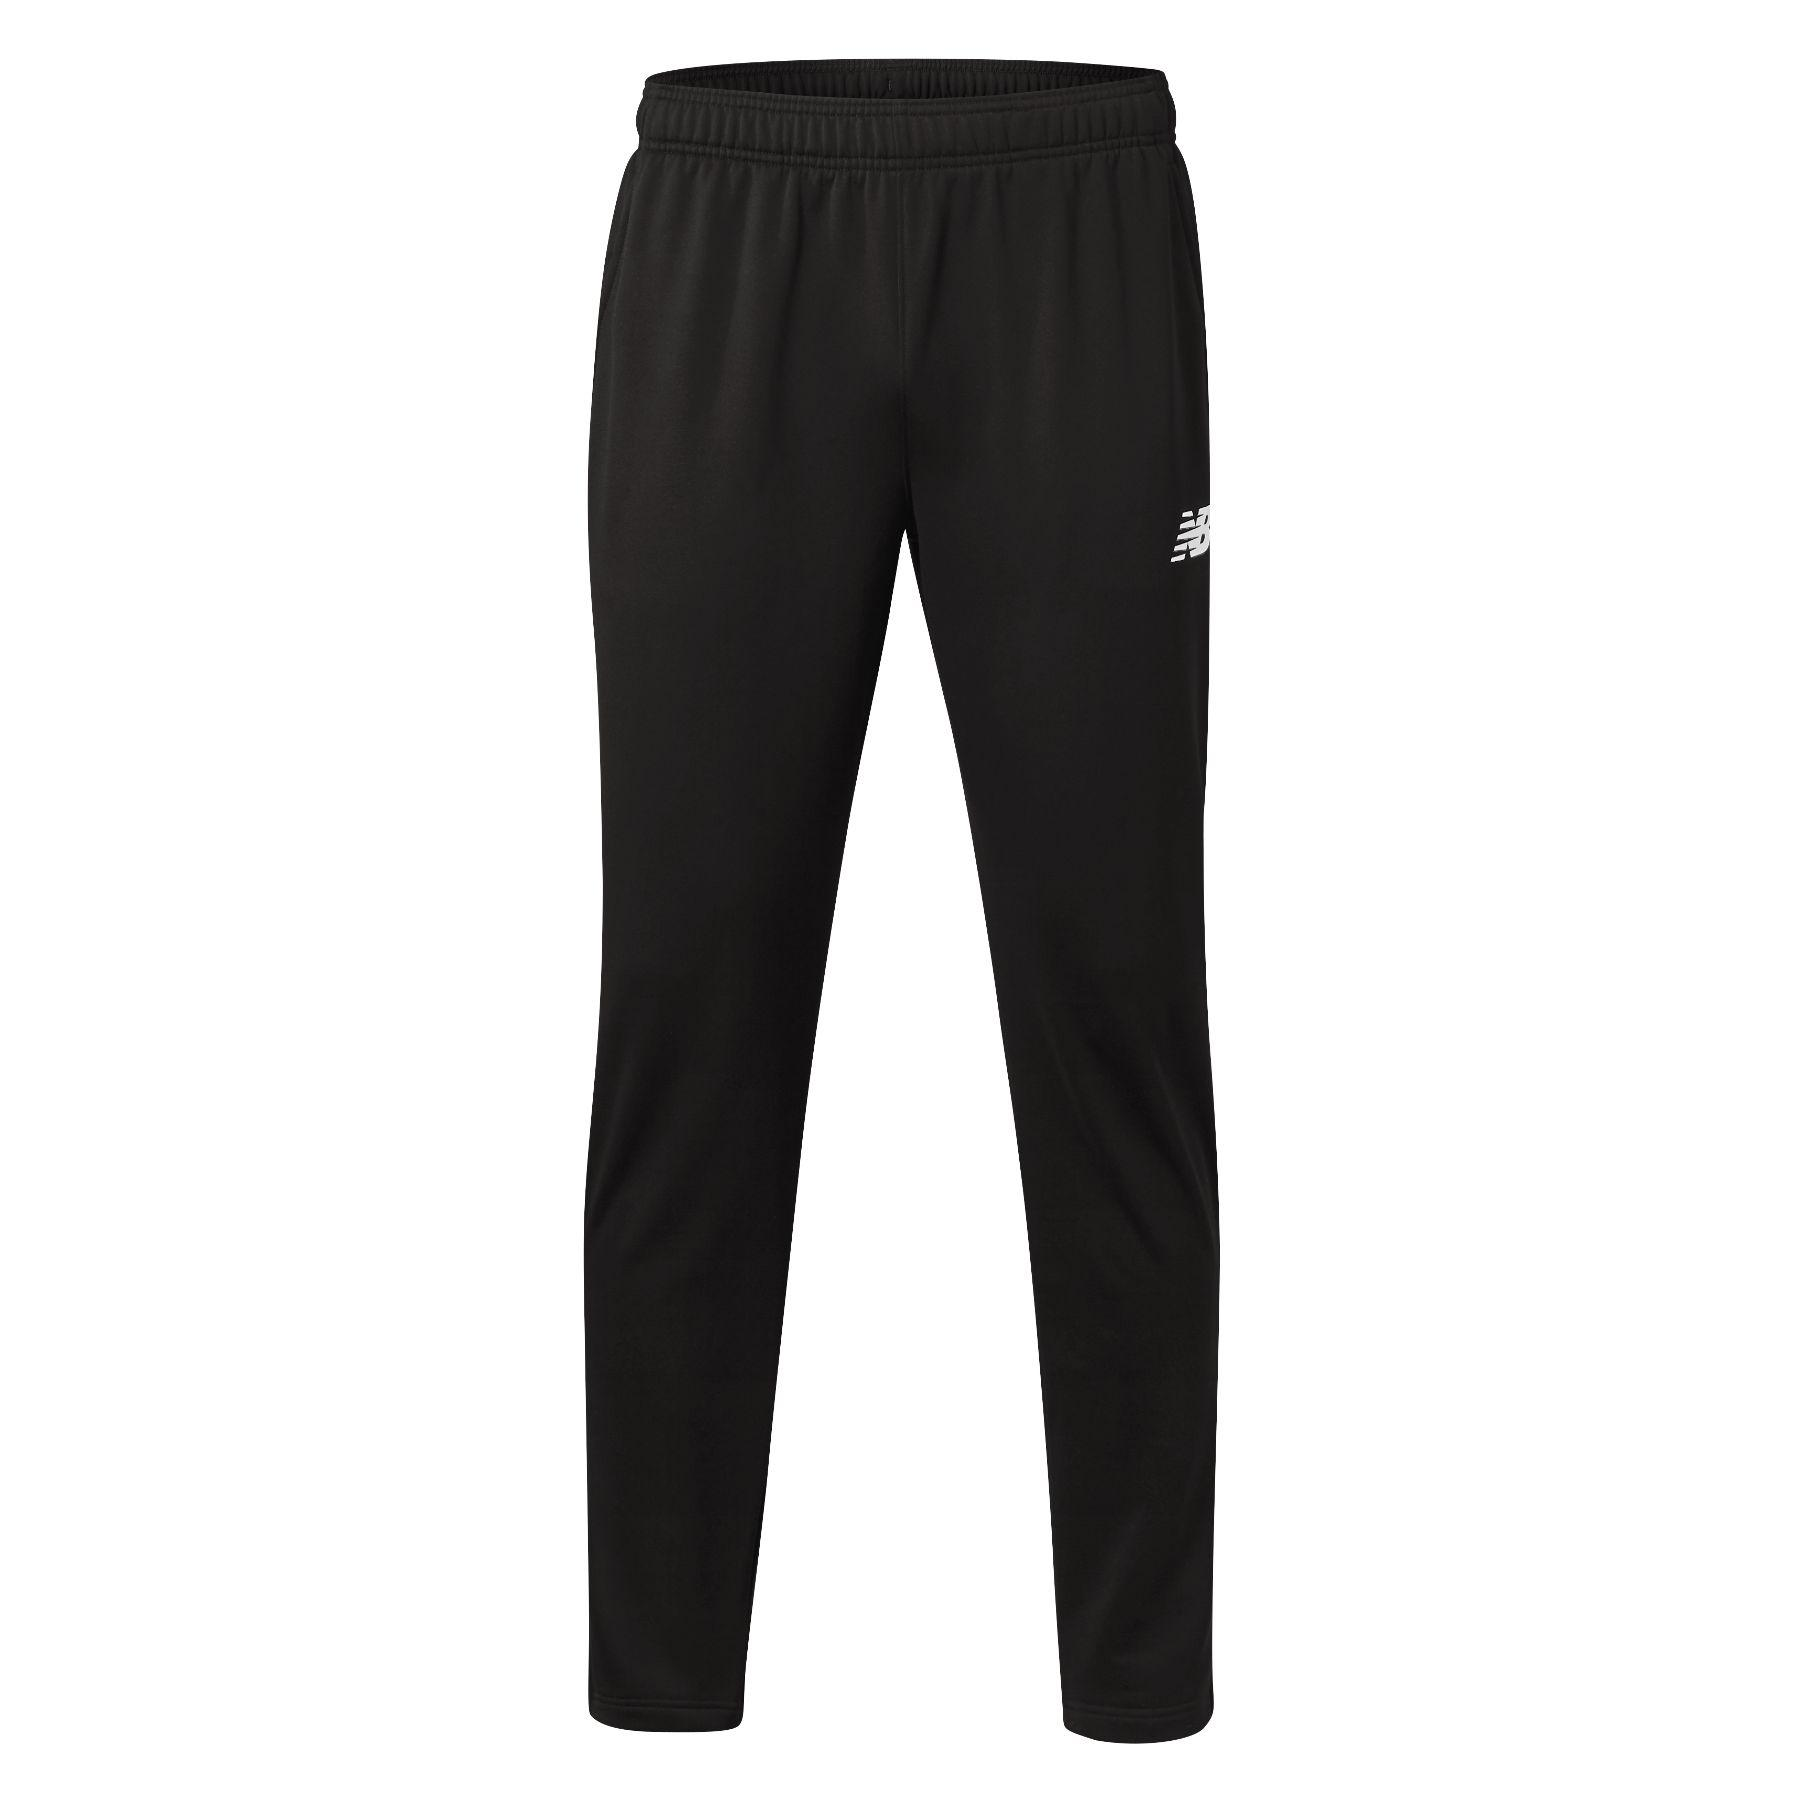 New Balance. Men's Black Nb Tech Fit Pant